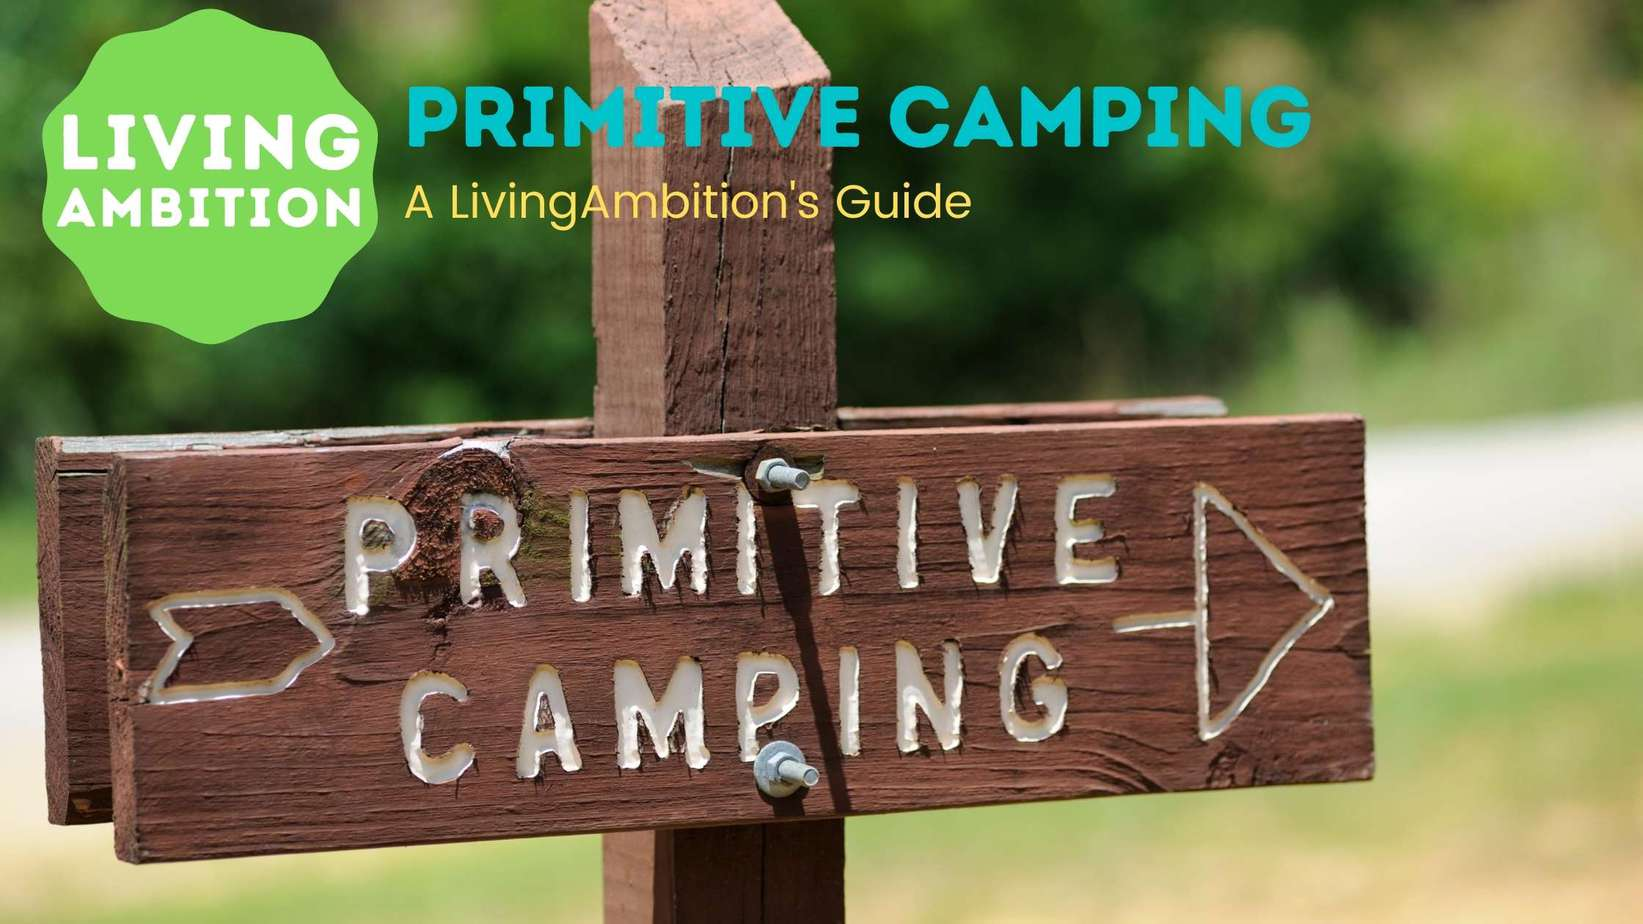 what does primitive camping mean